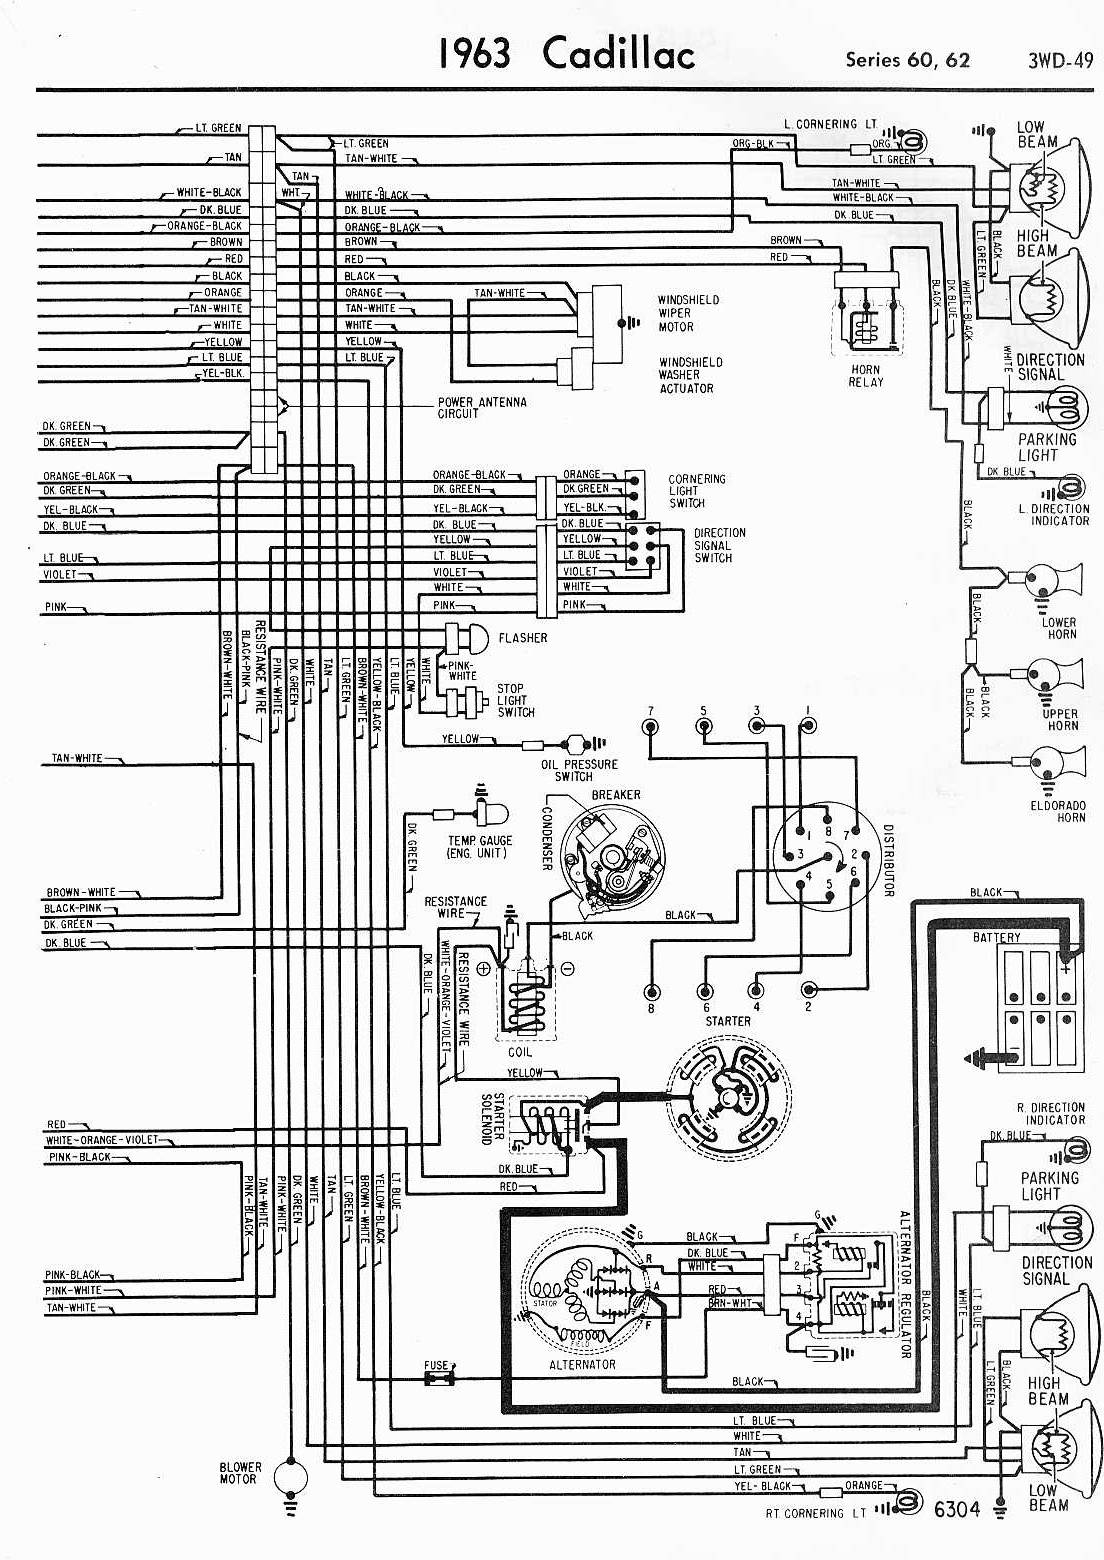 cadillac car manuals wiring diagrams pdf fault codes rh automotive manuals net 2005 cadillac wiring diagrams cadillac wiring diagrams schematics